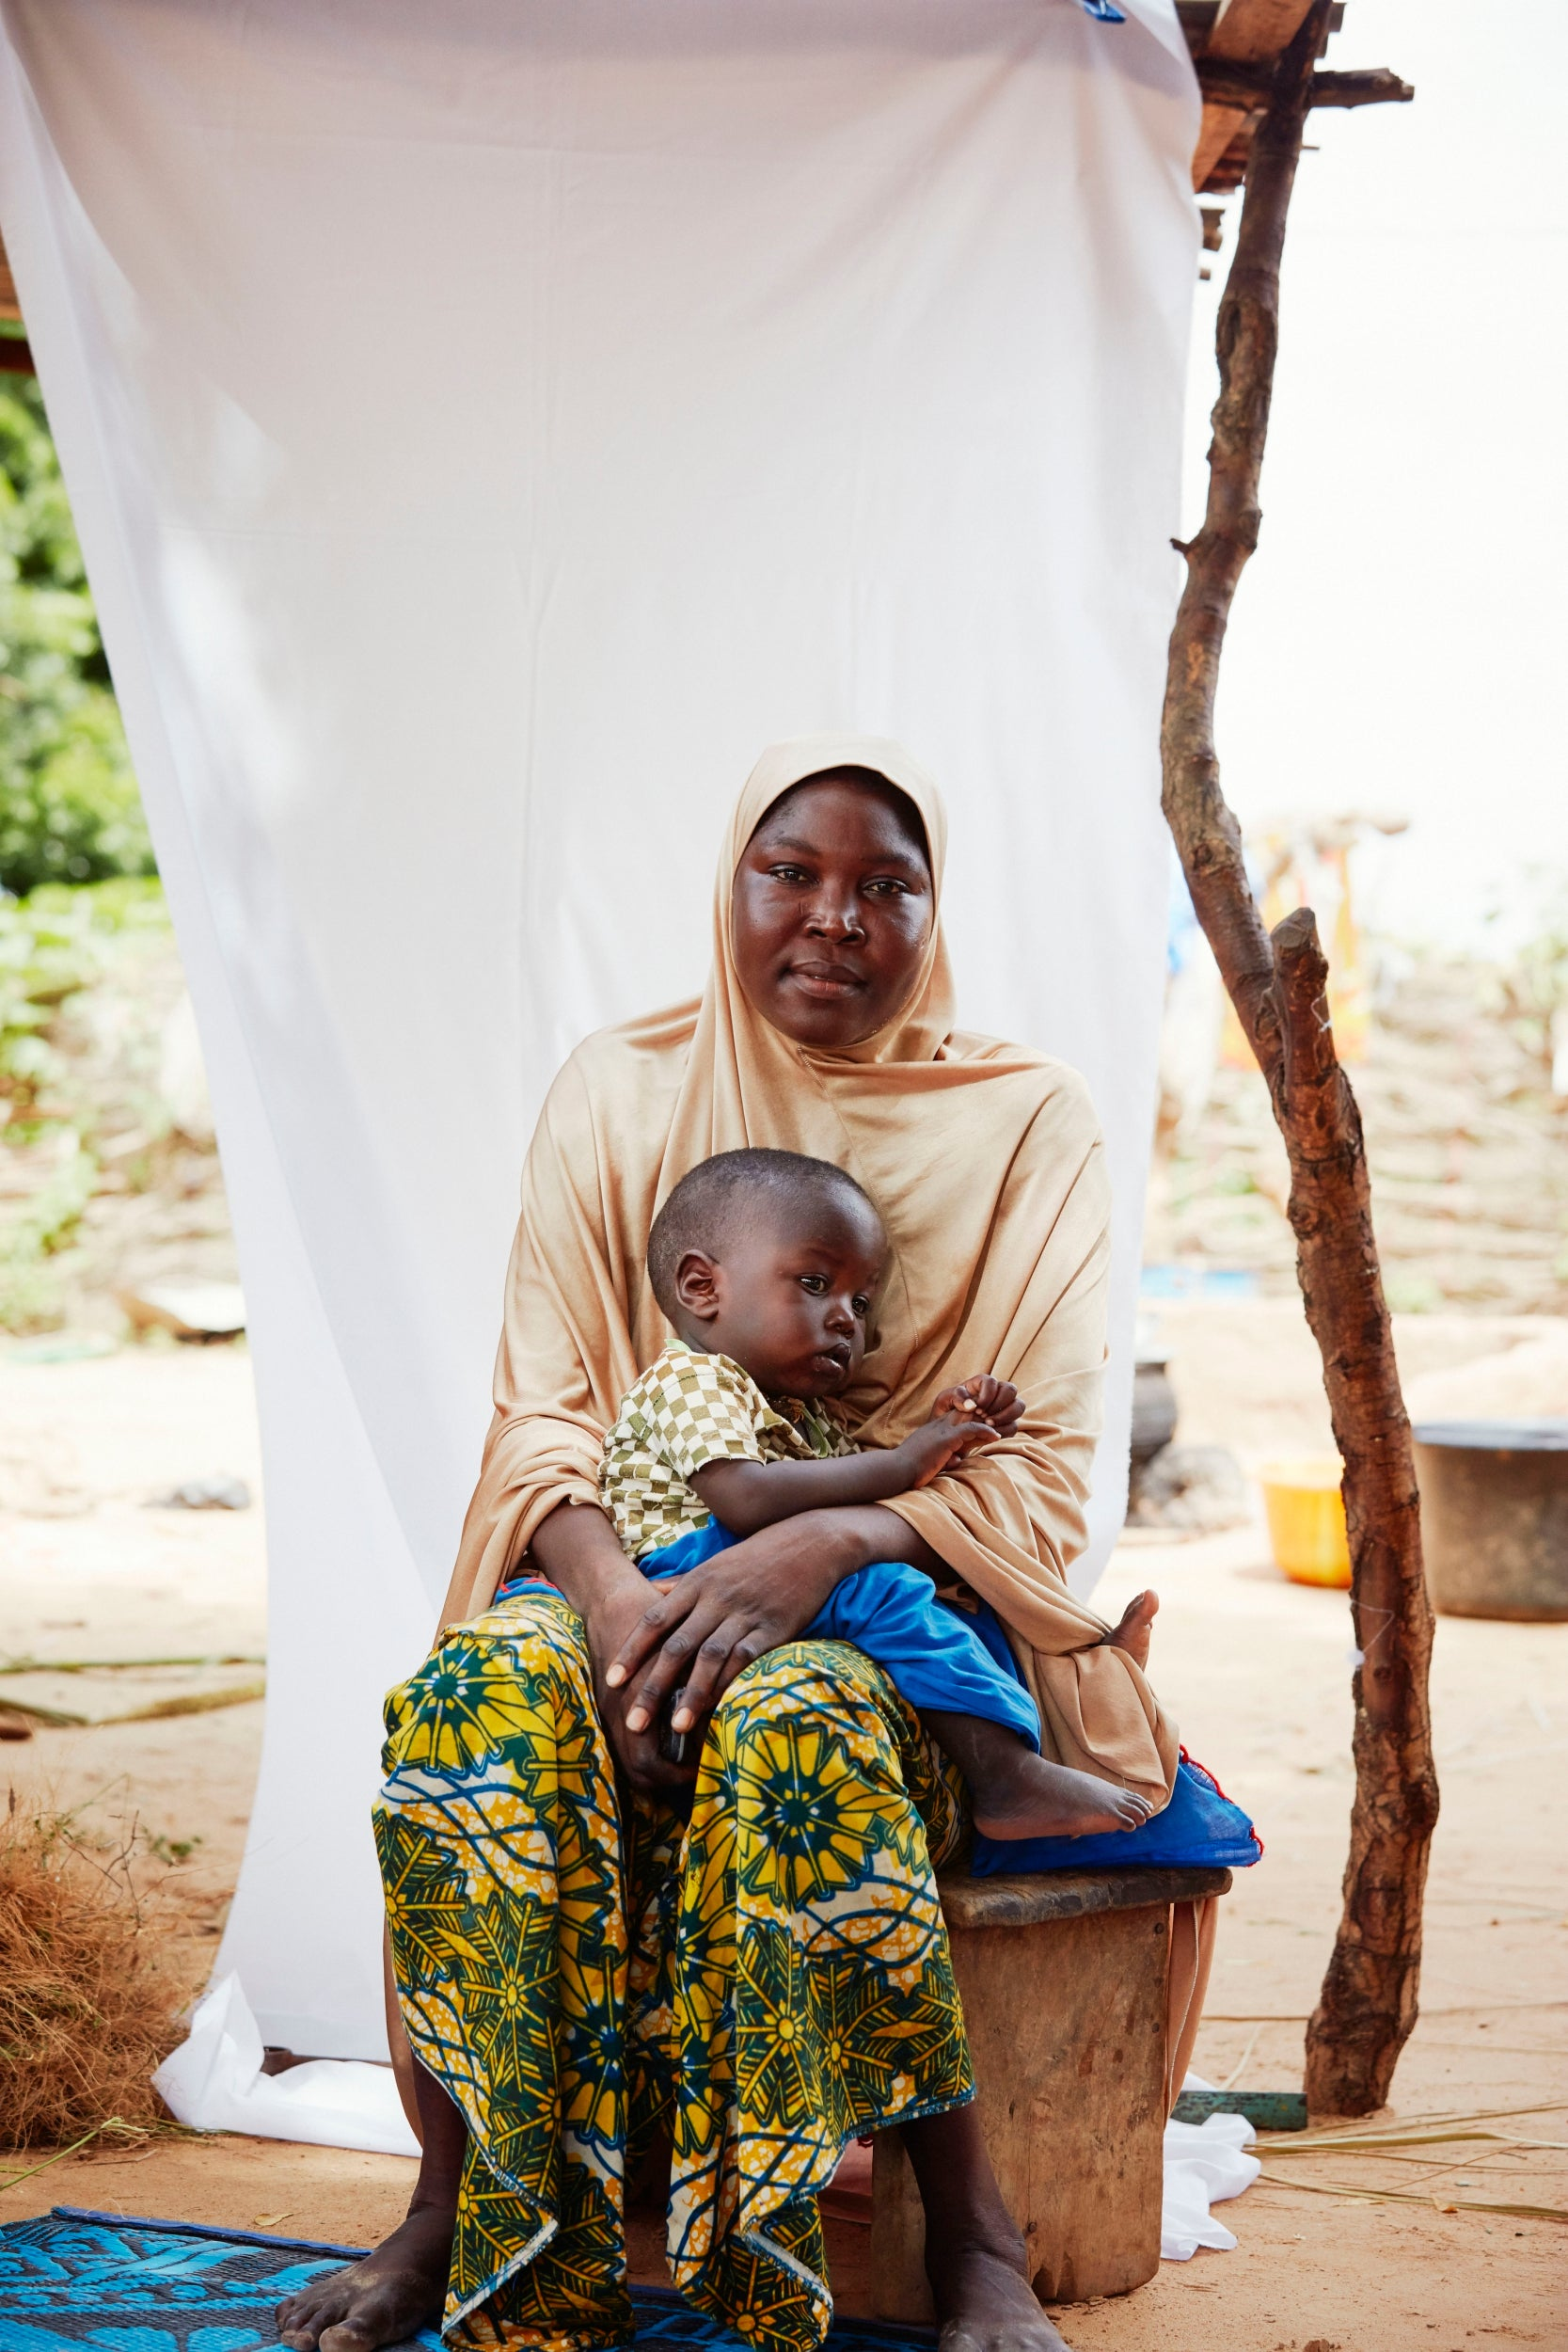 Hassi Seyni, 30, sits with her son, Mohamad Moufitaur, 15 months old – in Tombokiery village, southern Niger